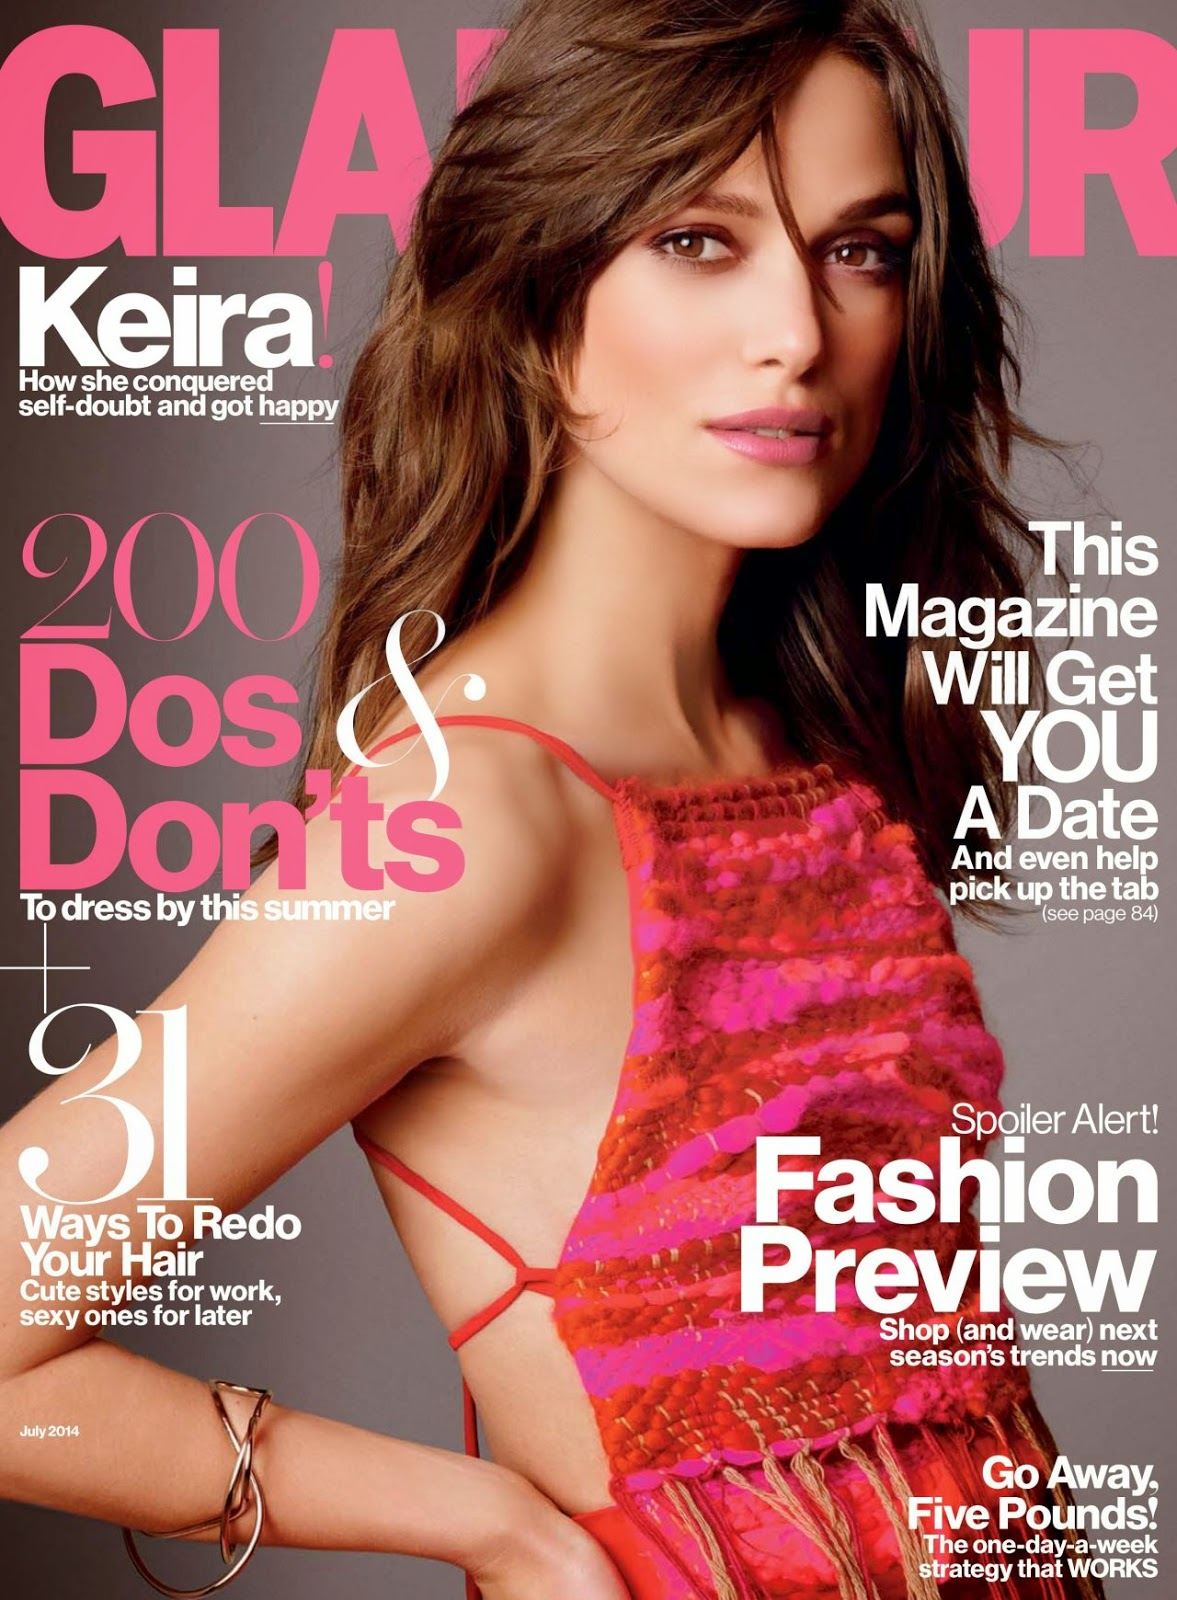 Keira Knightley covers Glamour's July 2014 issue